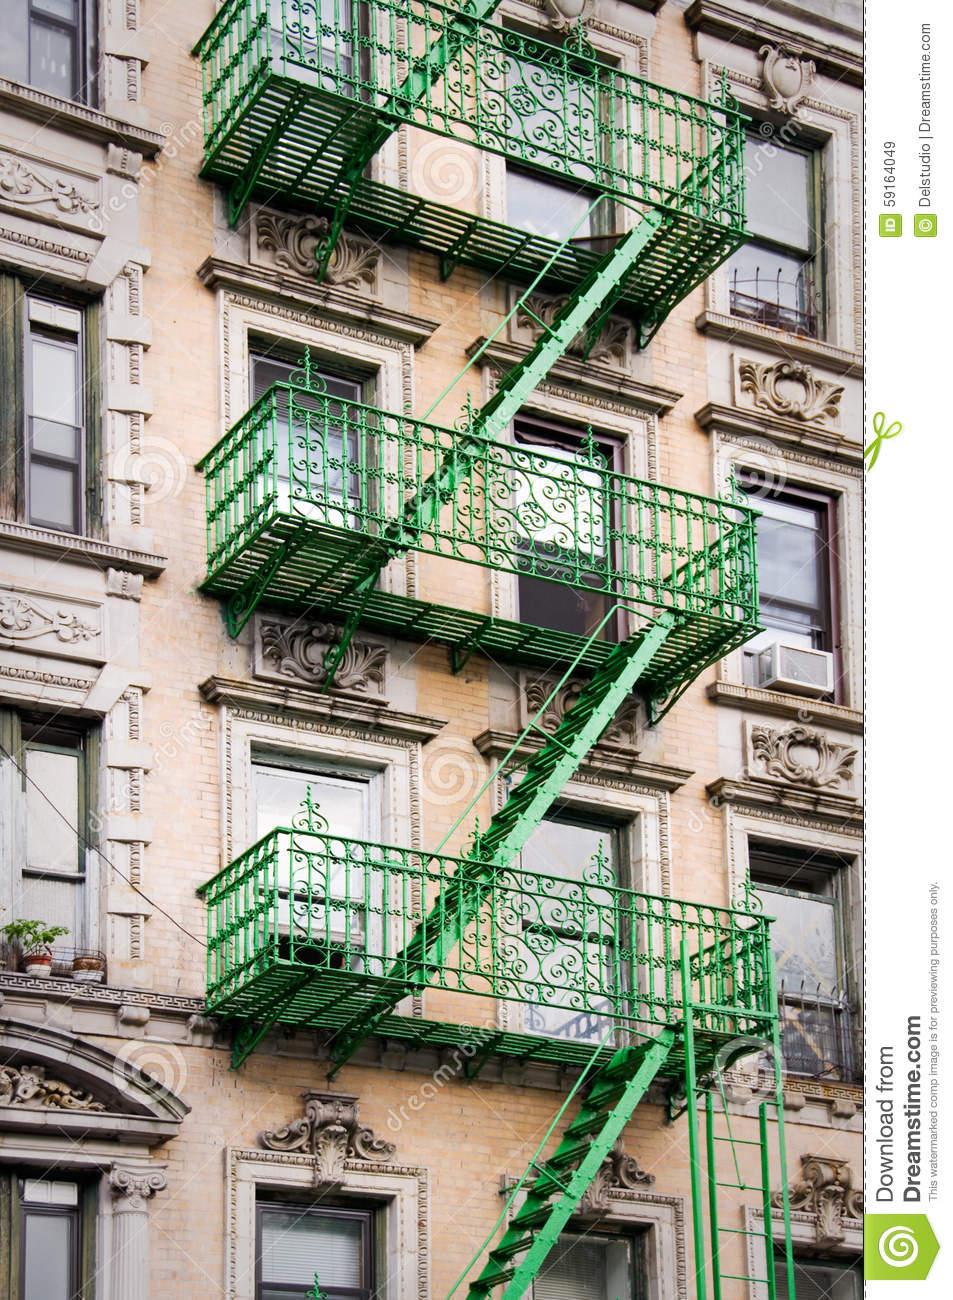 Green Outside Metal Fire Escape Stairs, New York